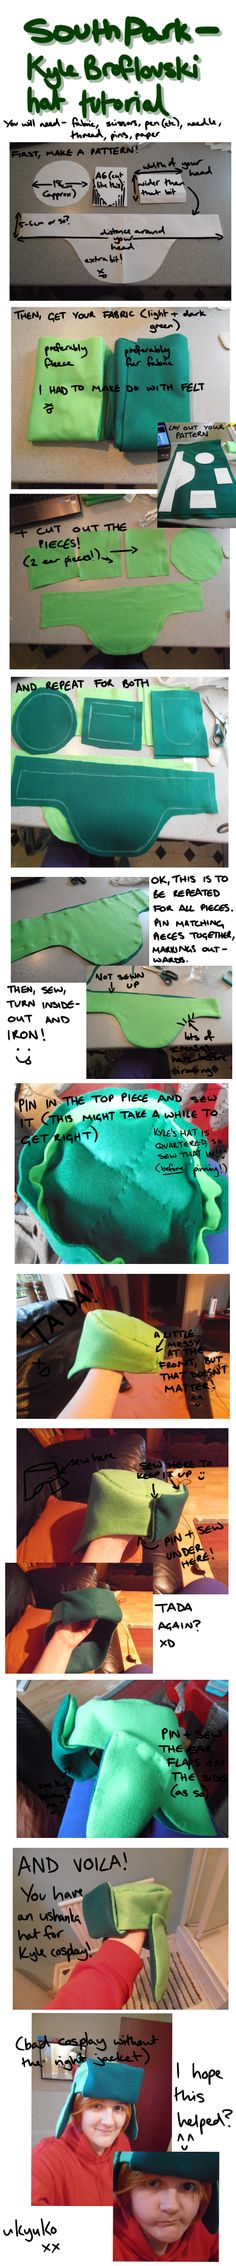 South Park Cosplay - Kyle Hat Tutorial by KyuketsukiKokoro.deviantart.com on @DeviantArt